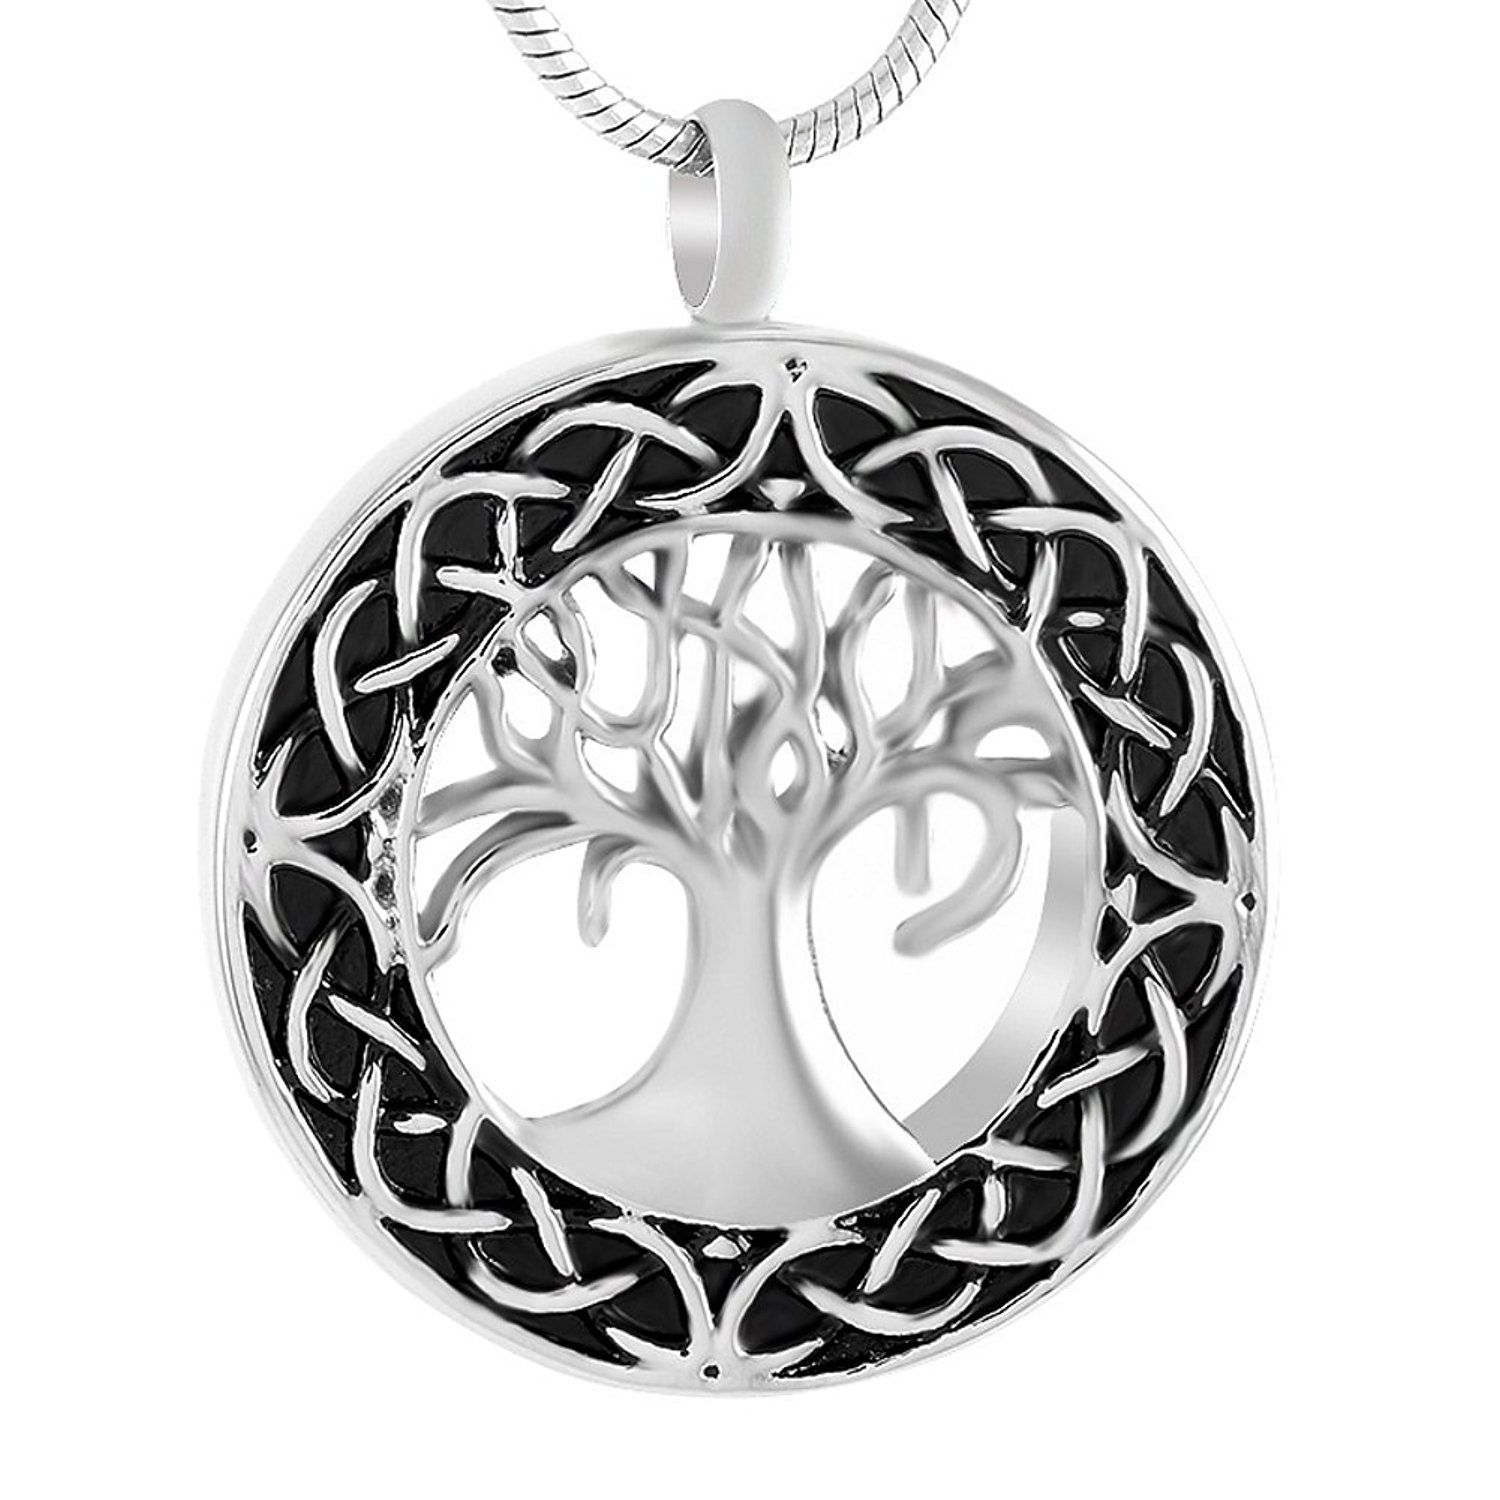 Celtic tree of life urn necklace cremation jewelry memorial celtic tree of life urn necklace cremation jewelry memorial keepsake pendant funnel kit included solutioingenieria Choice Image